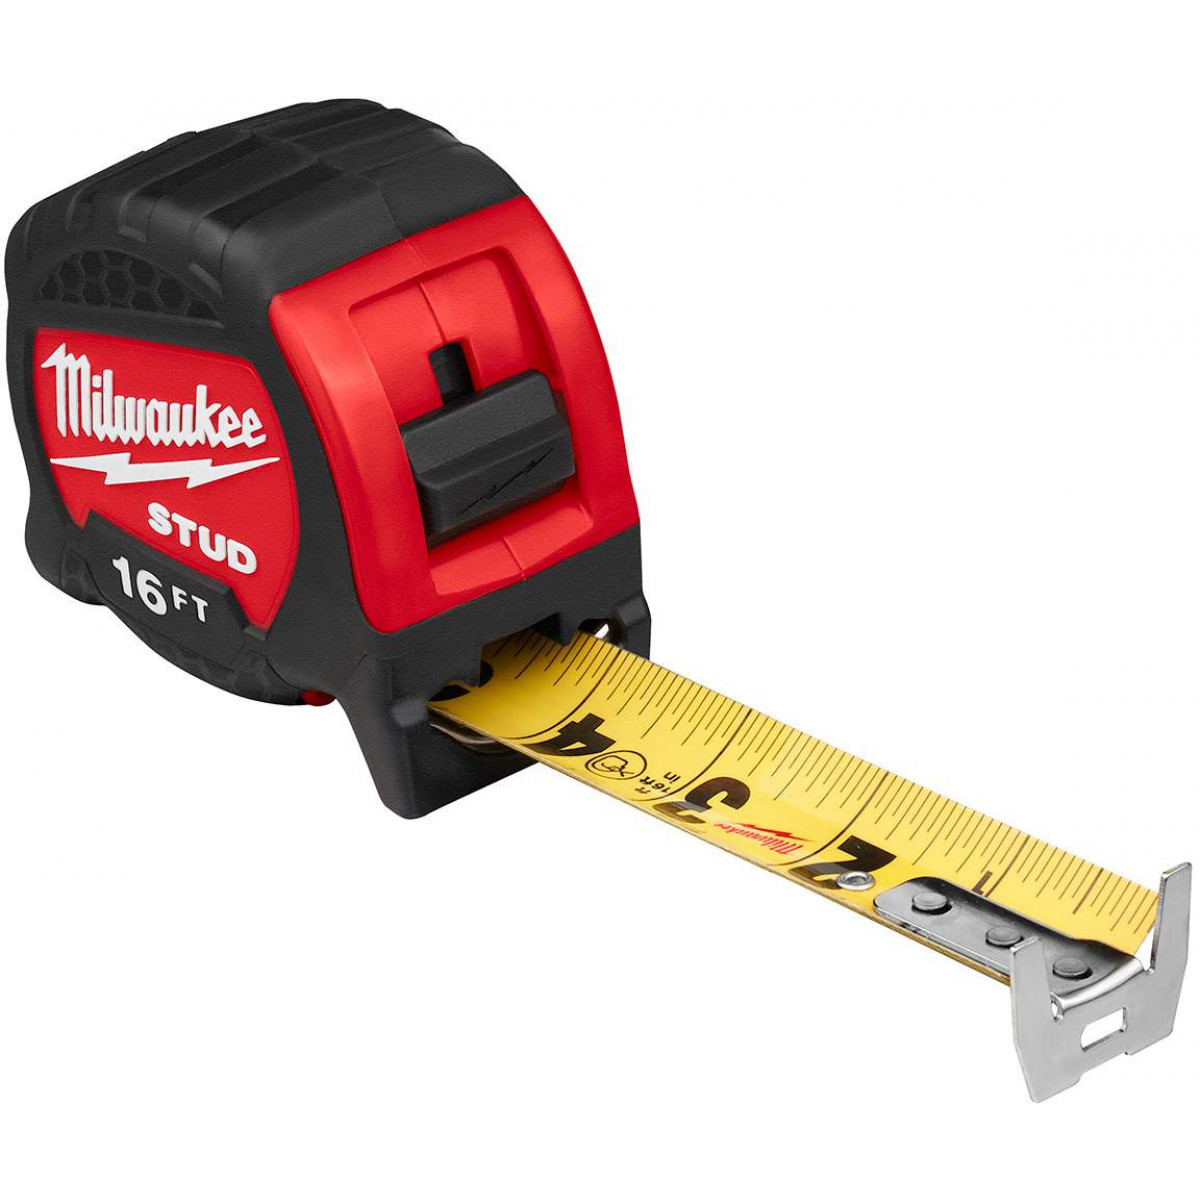 Milwaukee 48-22-97XX STUD Tape Measures